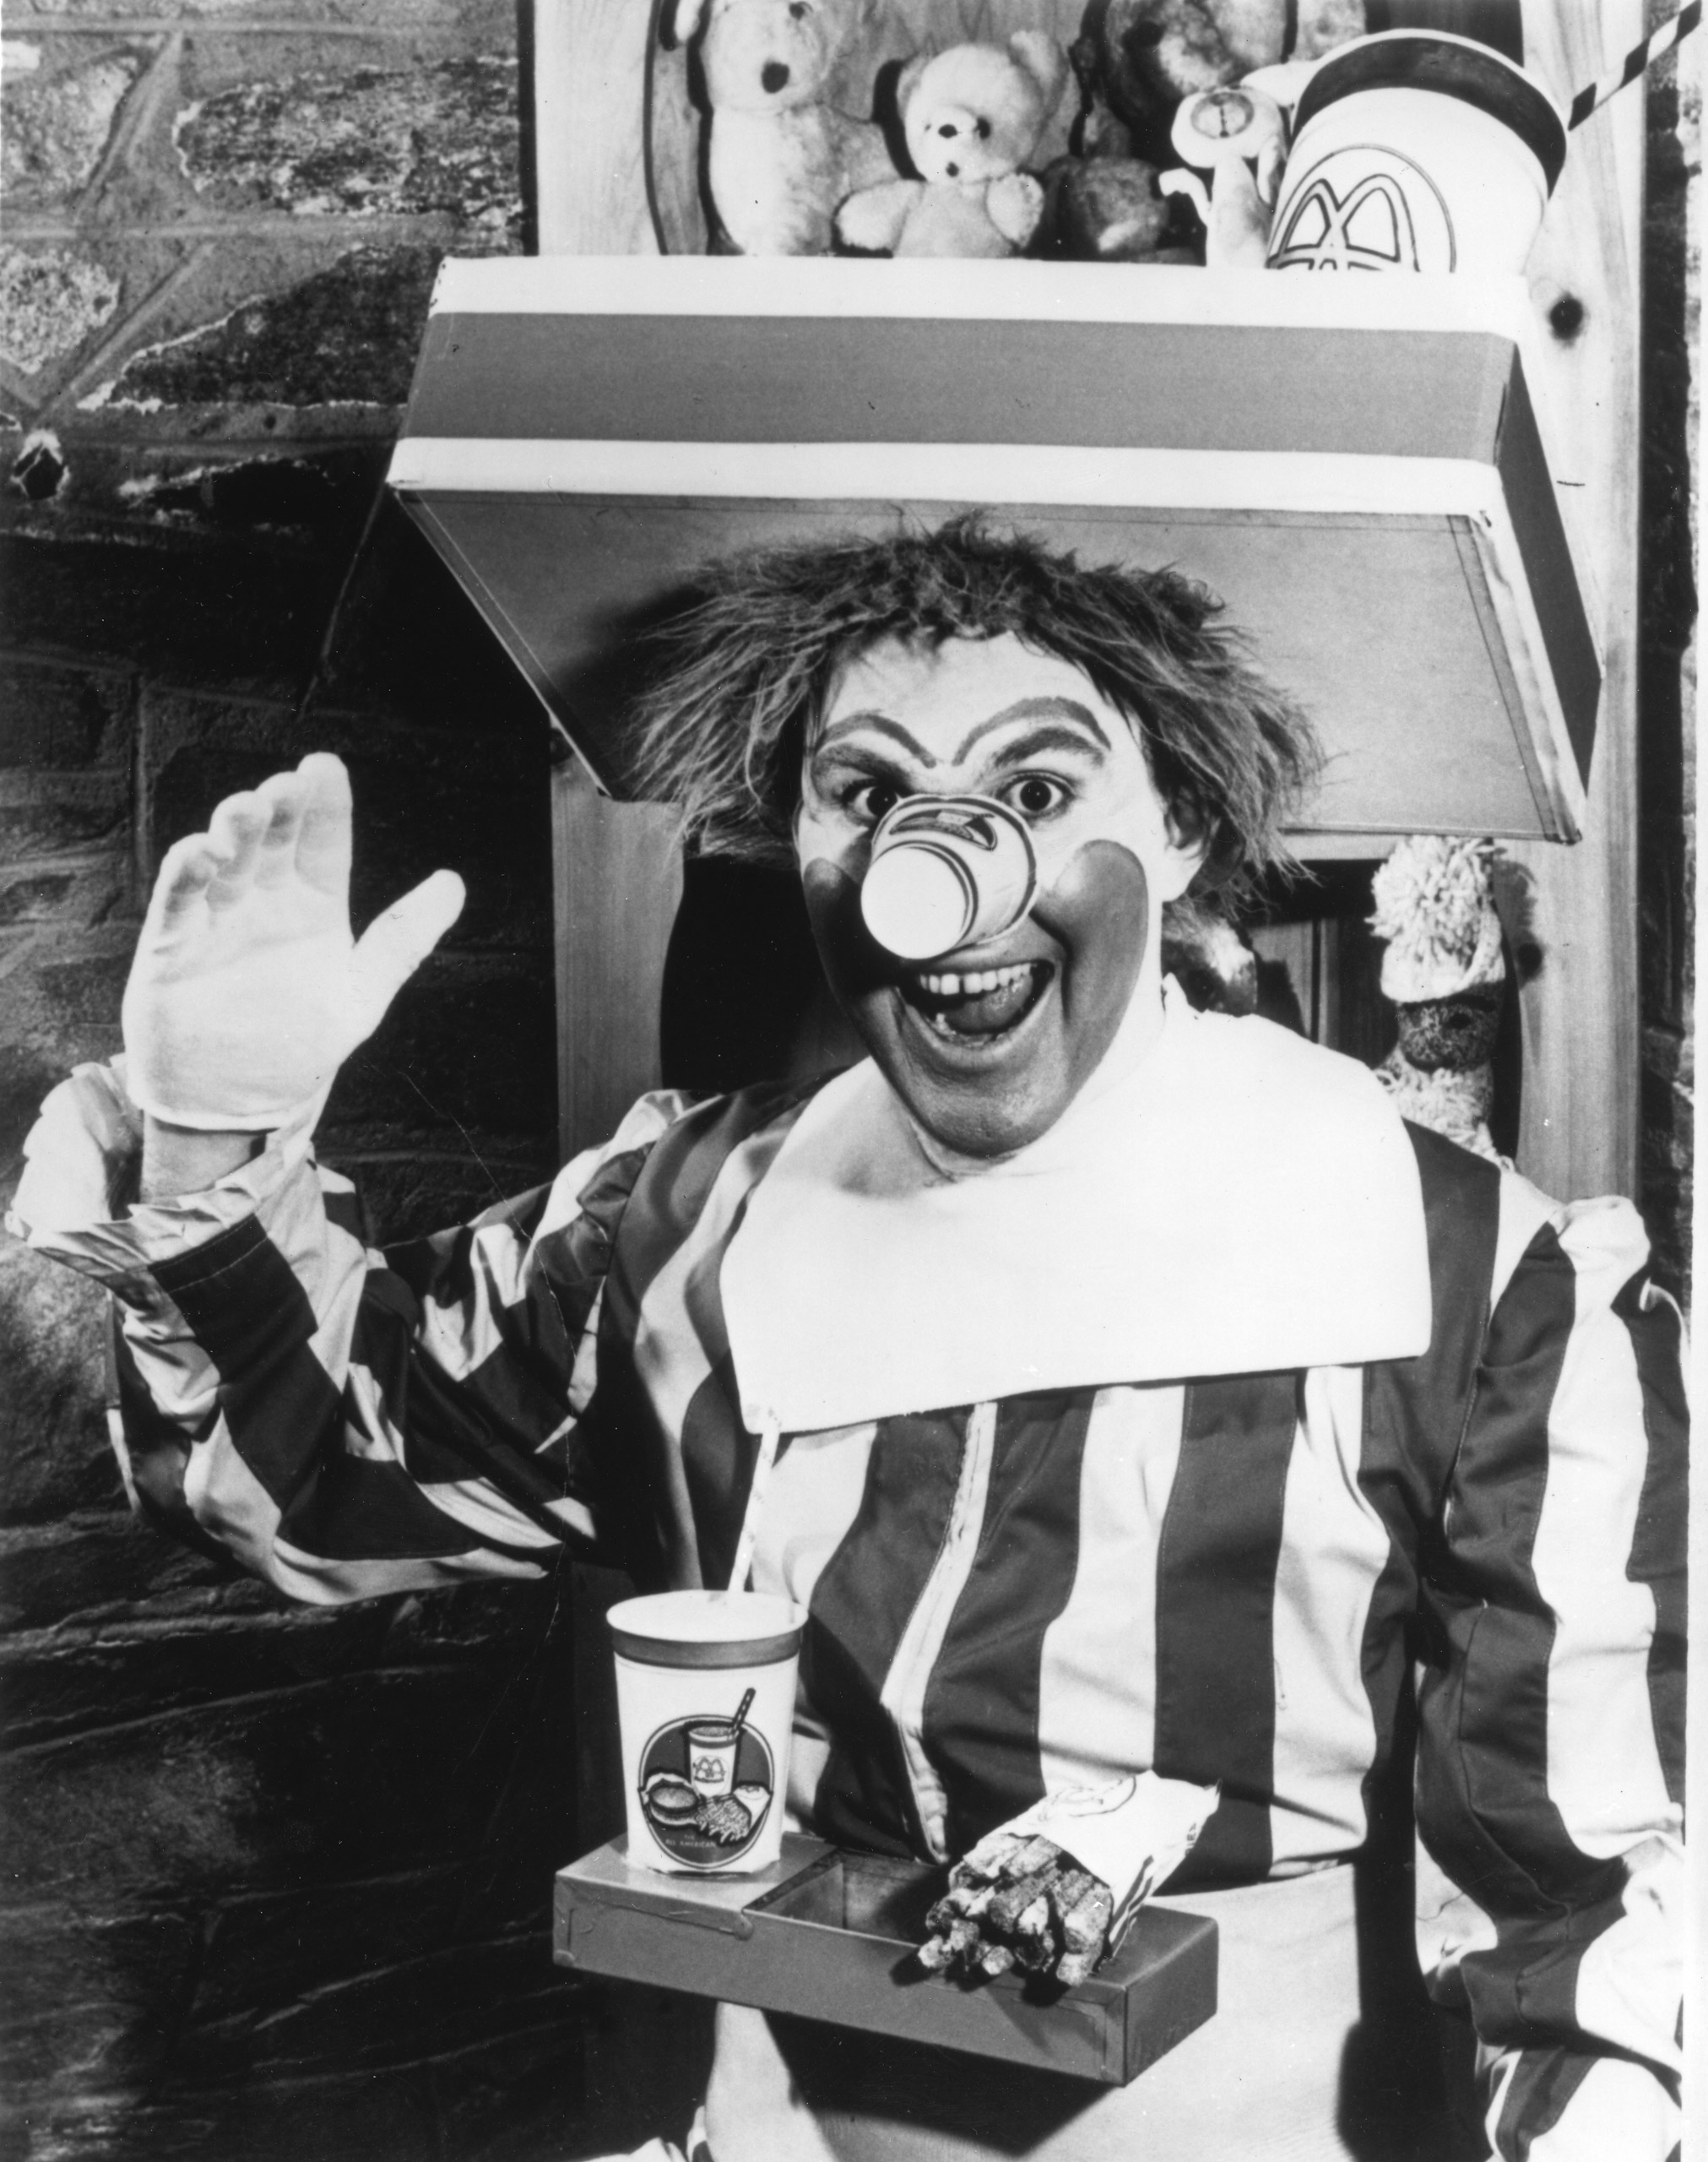 The first Ronald McDonald, played by Willard Scott, in 1963.